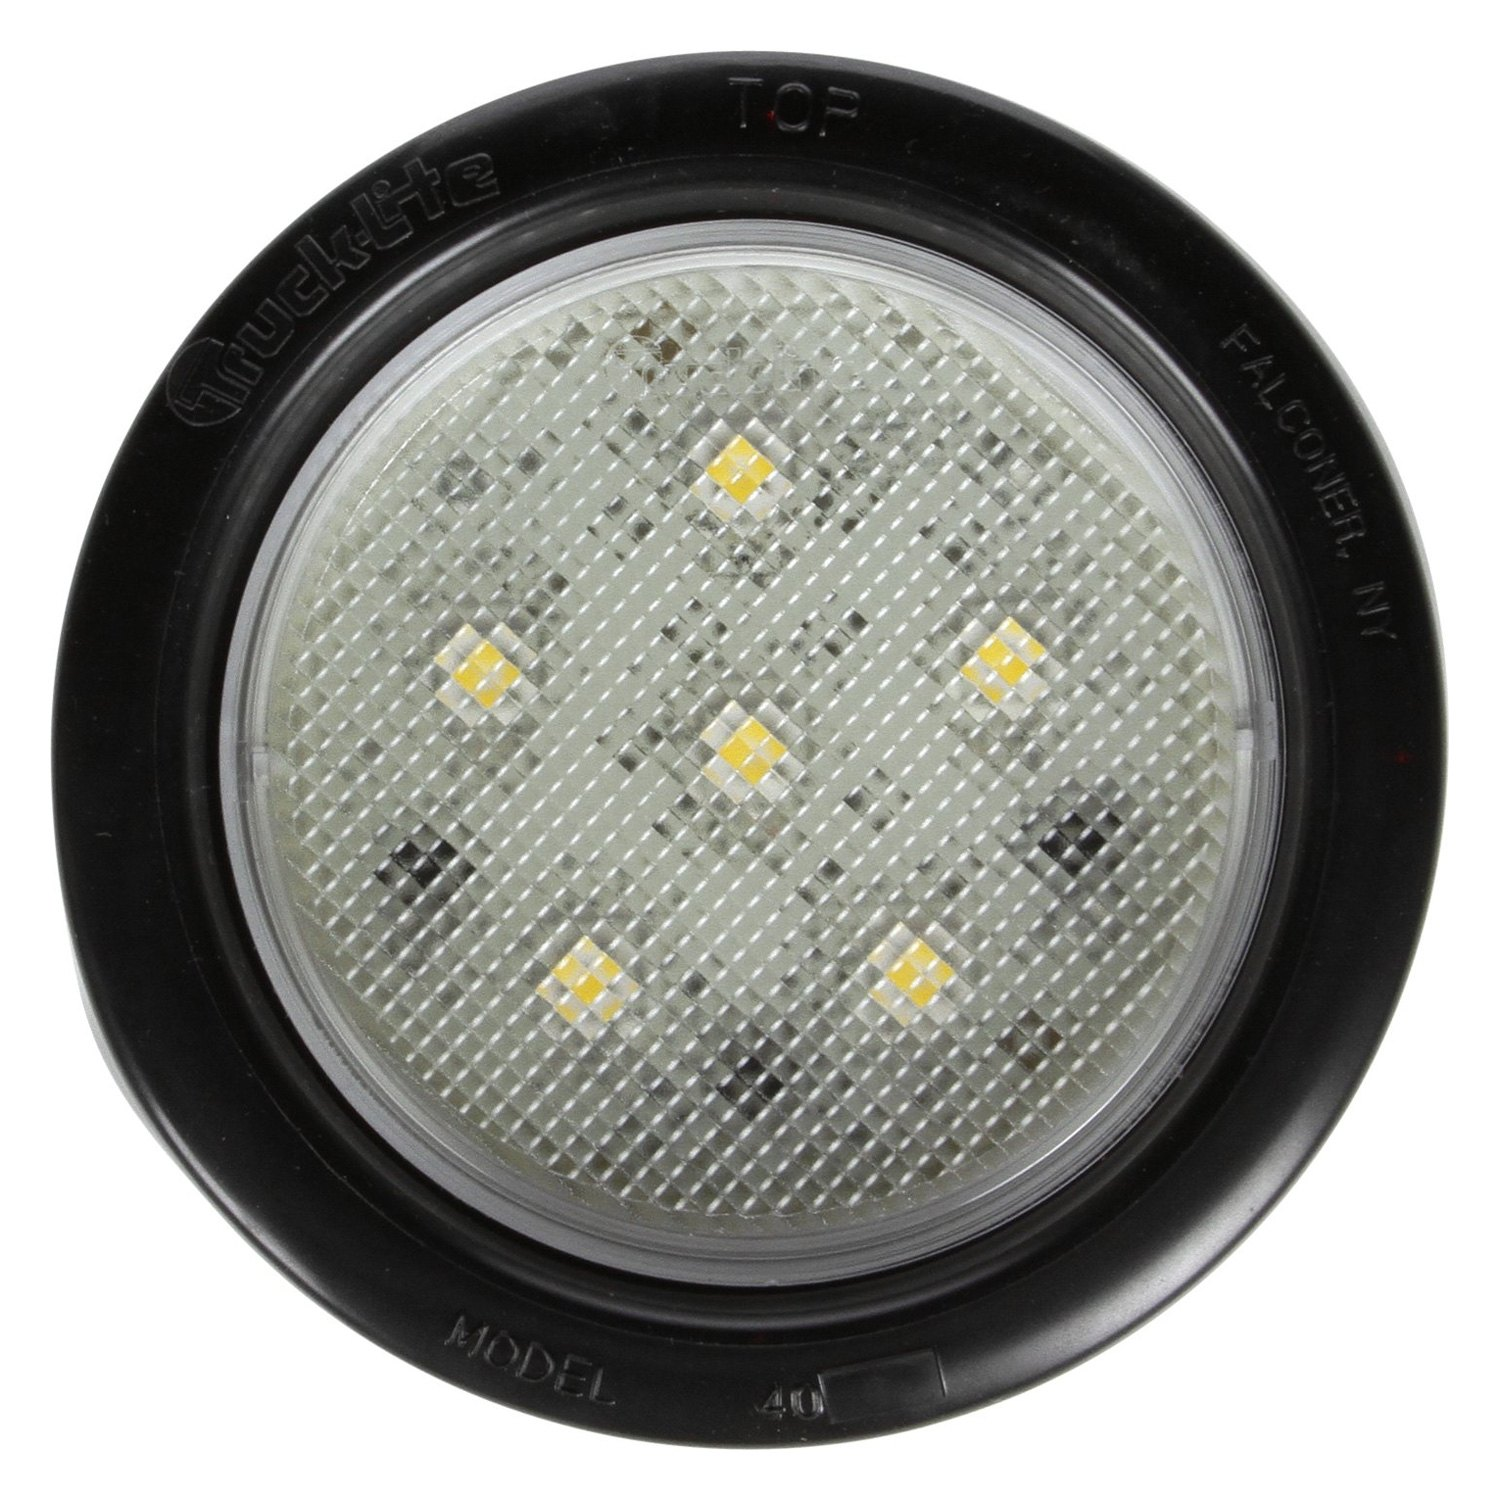 truck lite 44 series led dome light. Black Bedroom Furniture Sets. Home Design Ideas